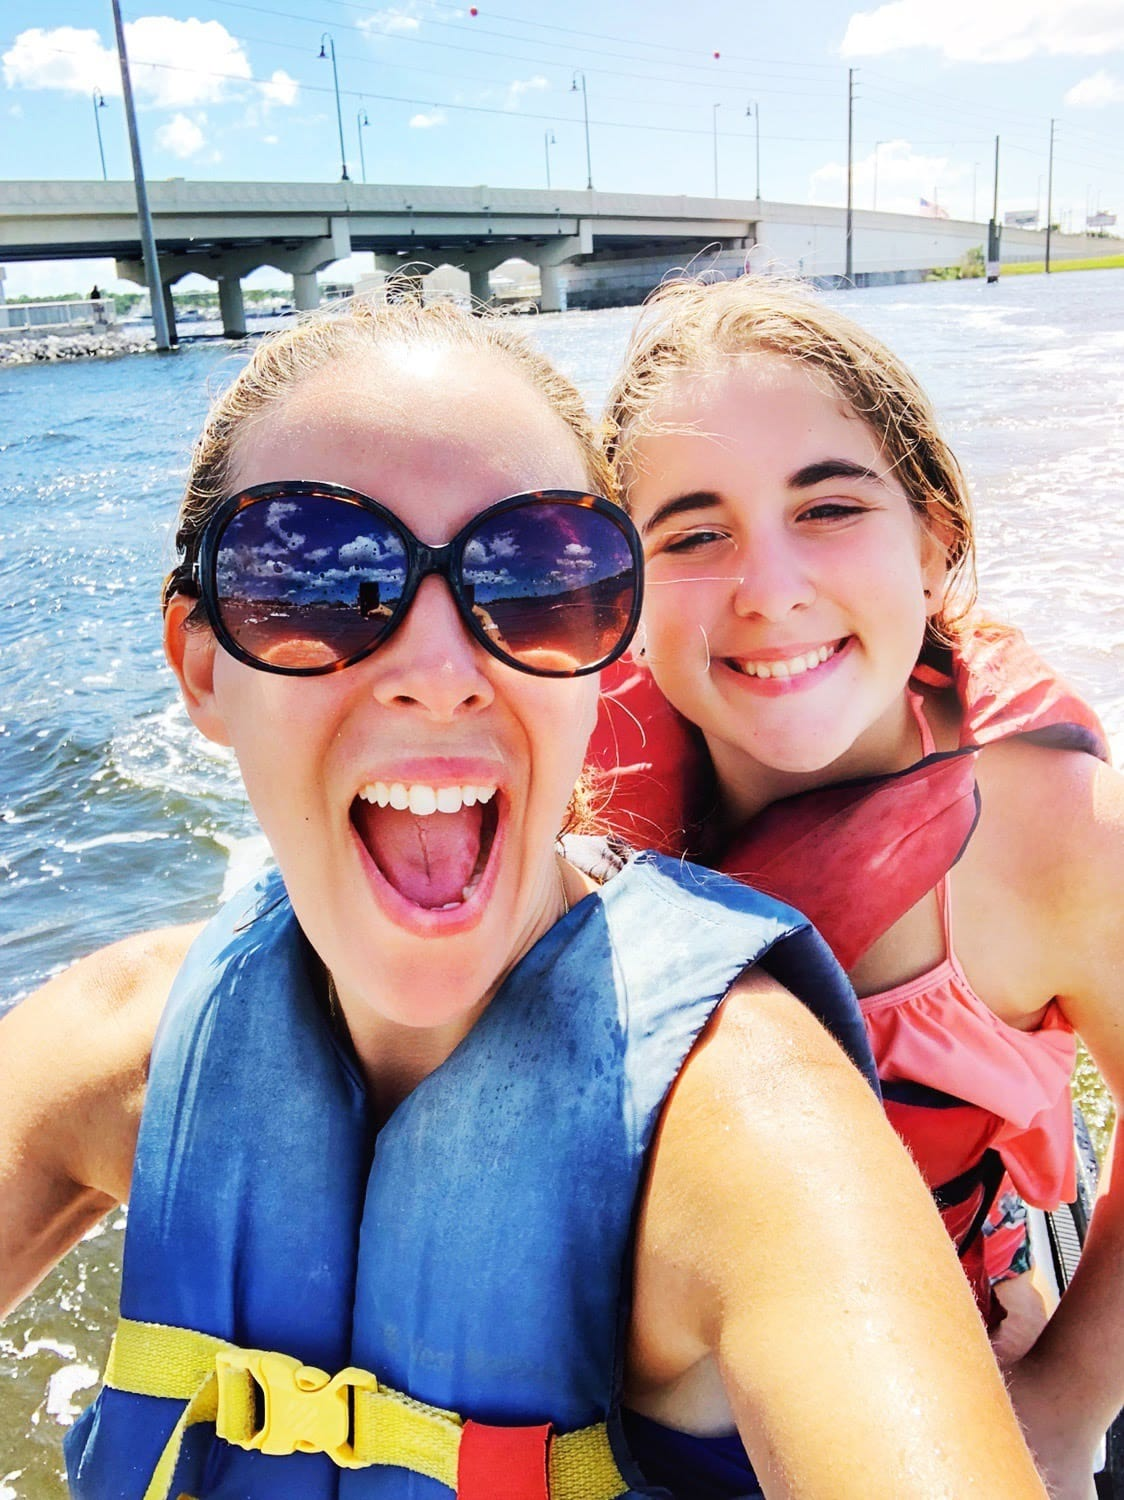 Adventures At Sea Jet Skis Tour Review In Panama City Beach